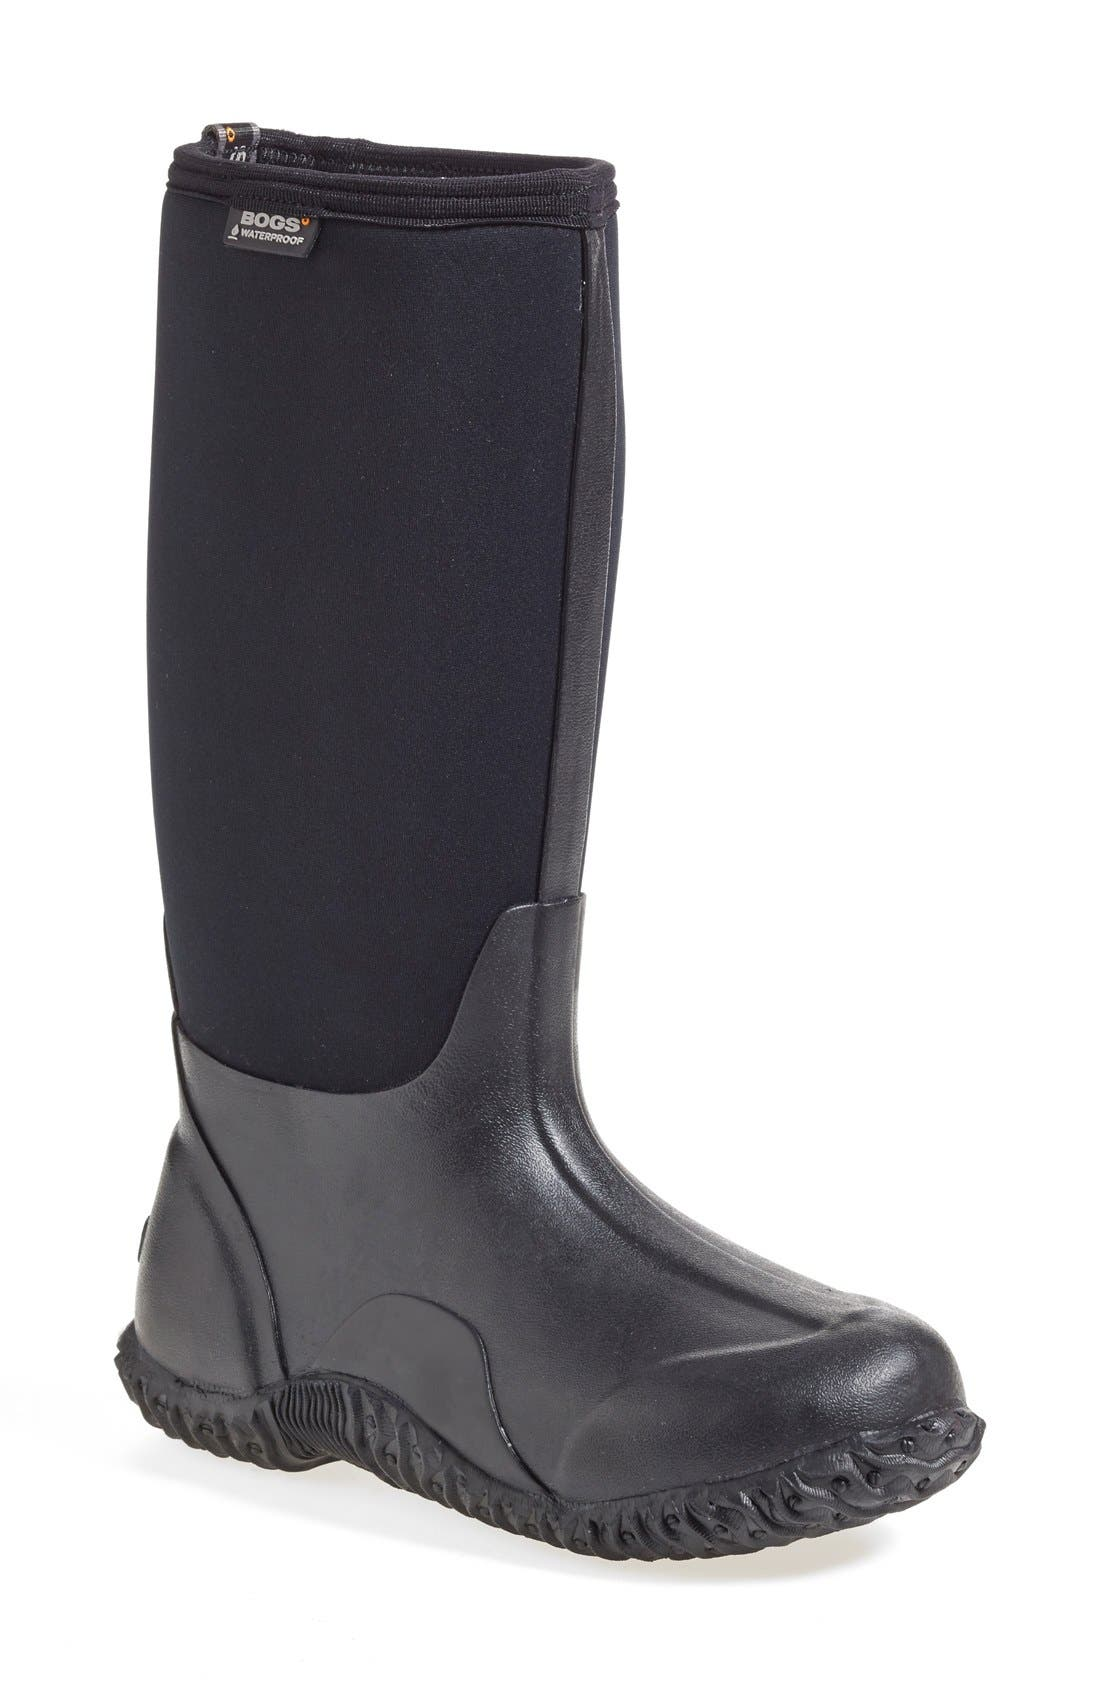 'Classic' High Waterproof Snow Boot,                             Main thumbnail 1, color,                             001